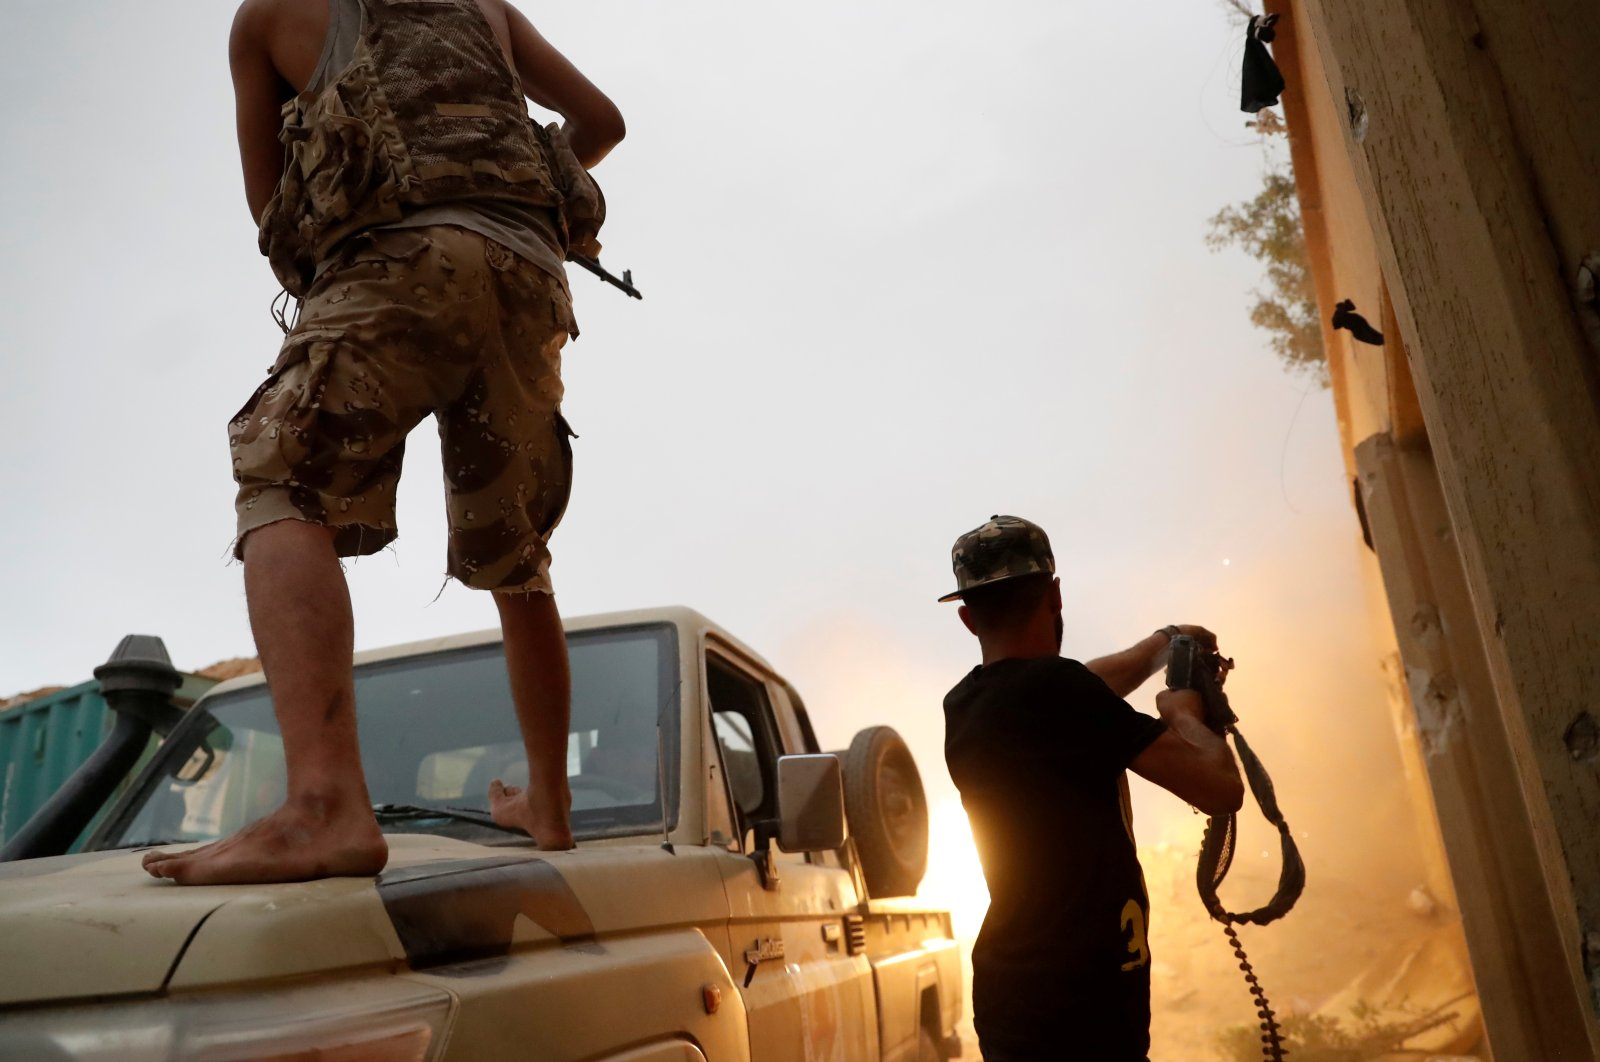 Fighters loyal to Libya's U.N.-backed government (GNA) fire guns during clashes with forces loyal to putschist Gen. Khalifa Haftar on the outskirts of Tripoli, Libya, May 25, 2019. (REUTERS Photo)